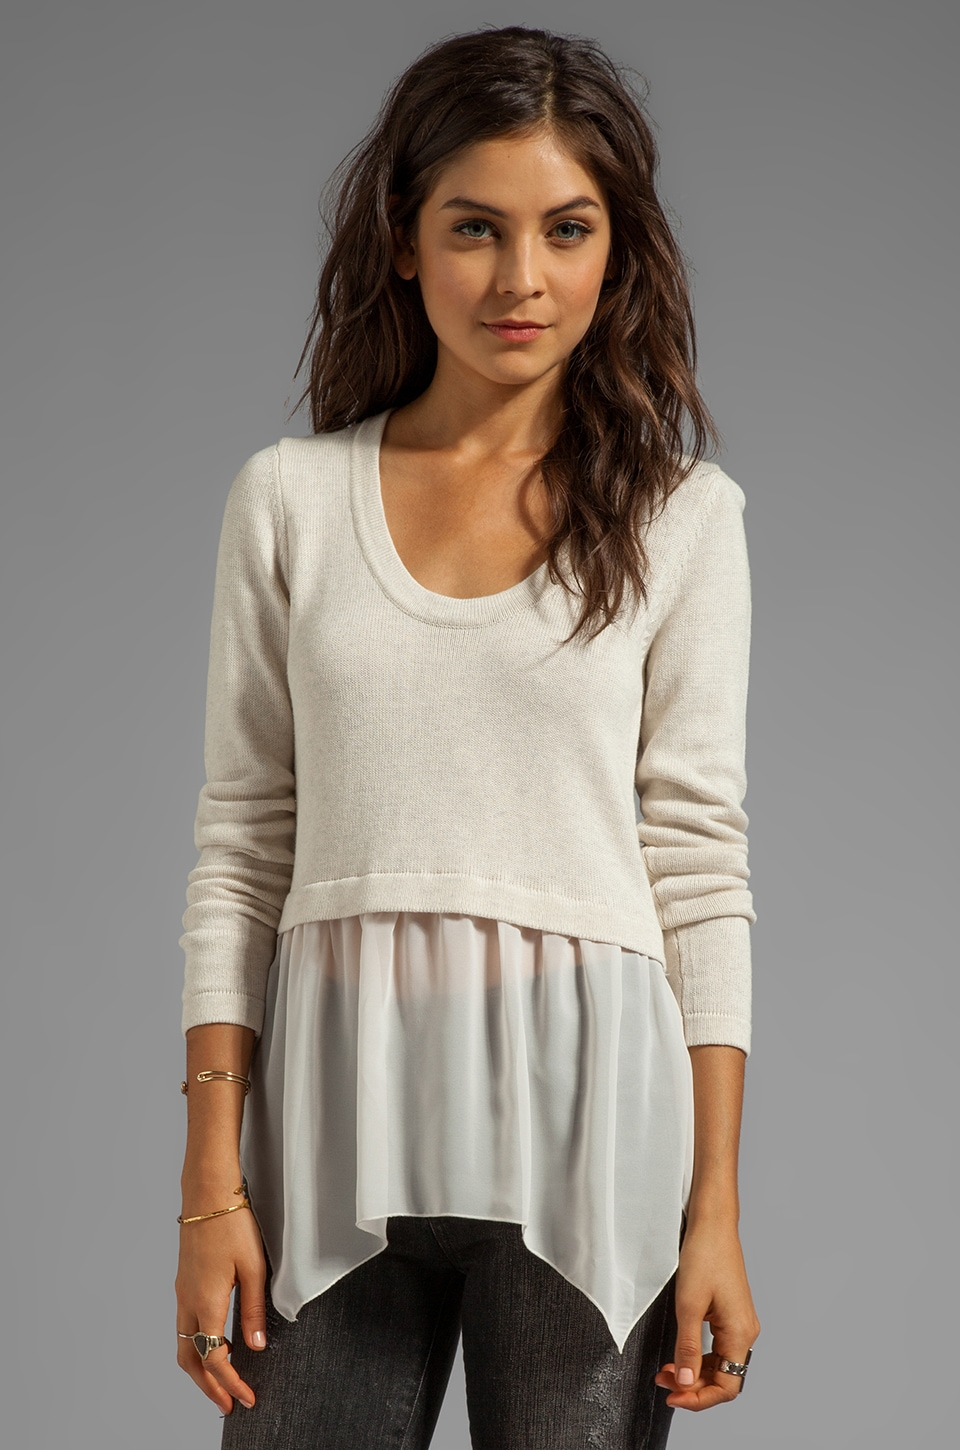 Central Park West Andover Sheer Combo Sweater in Bone